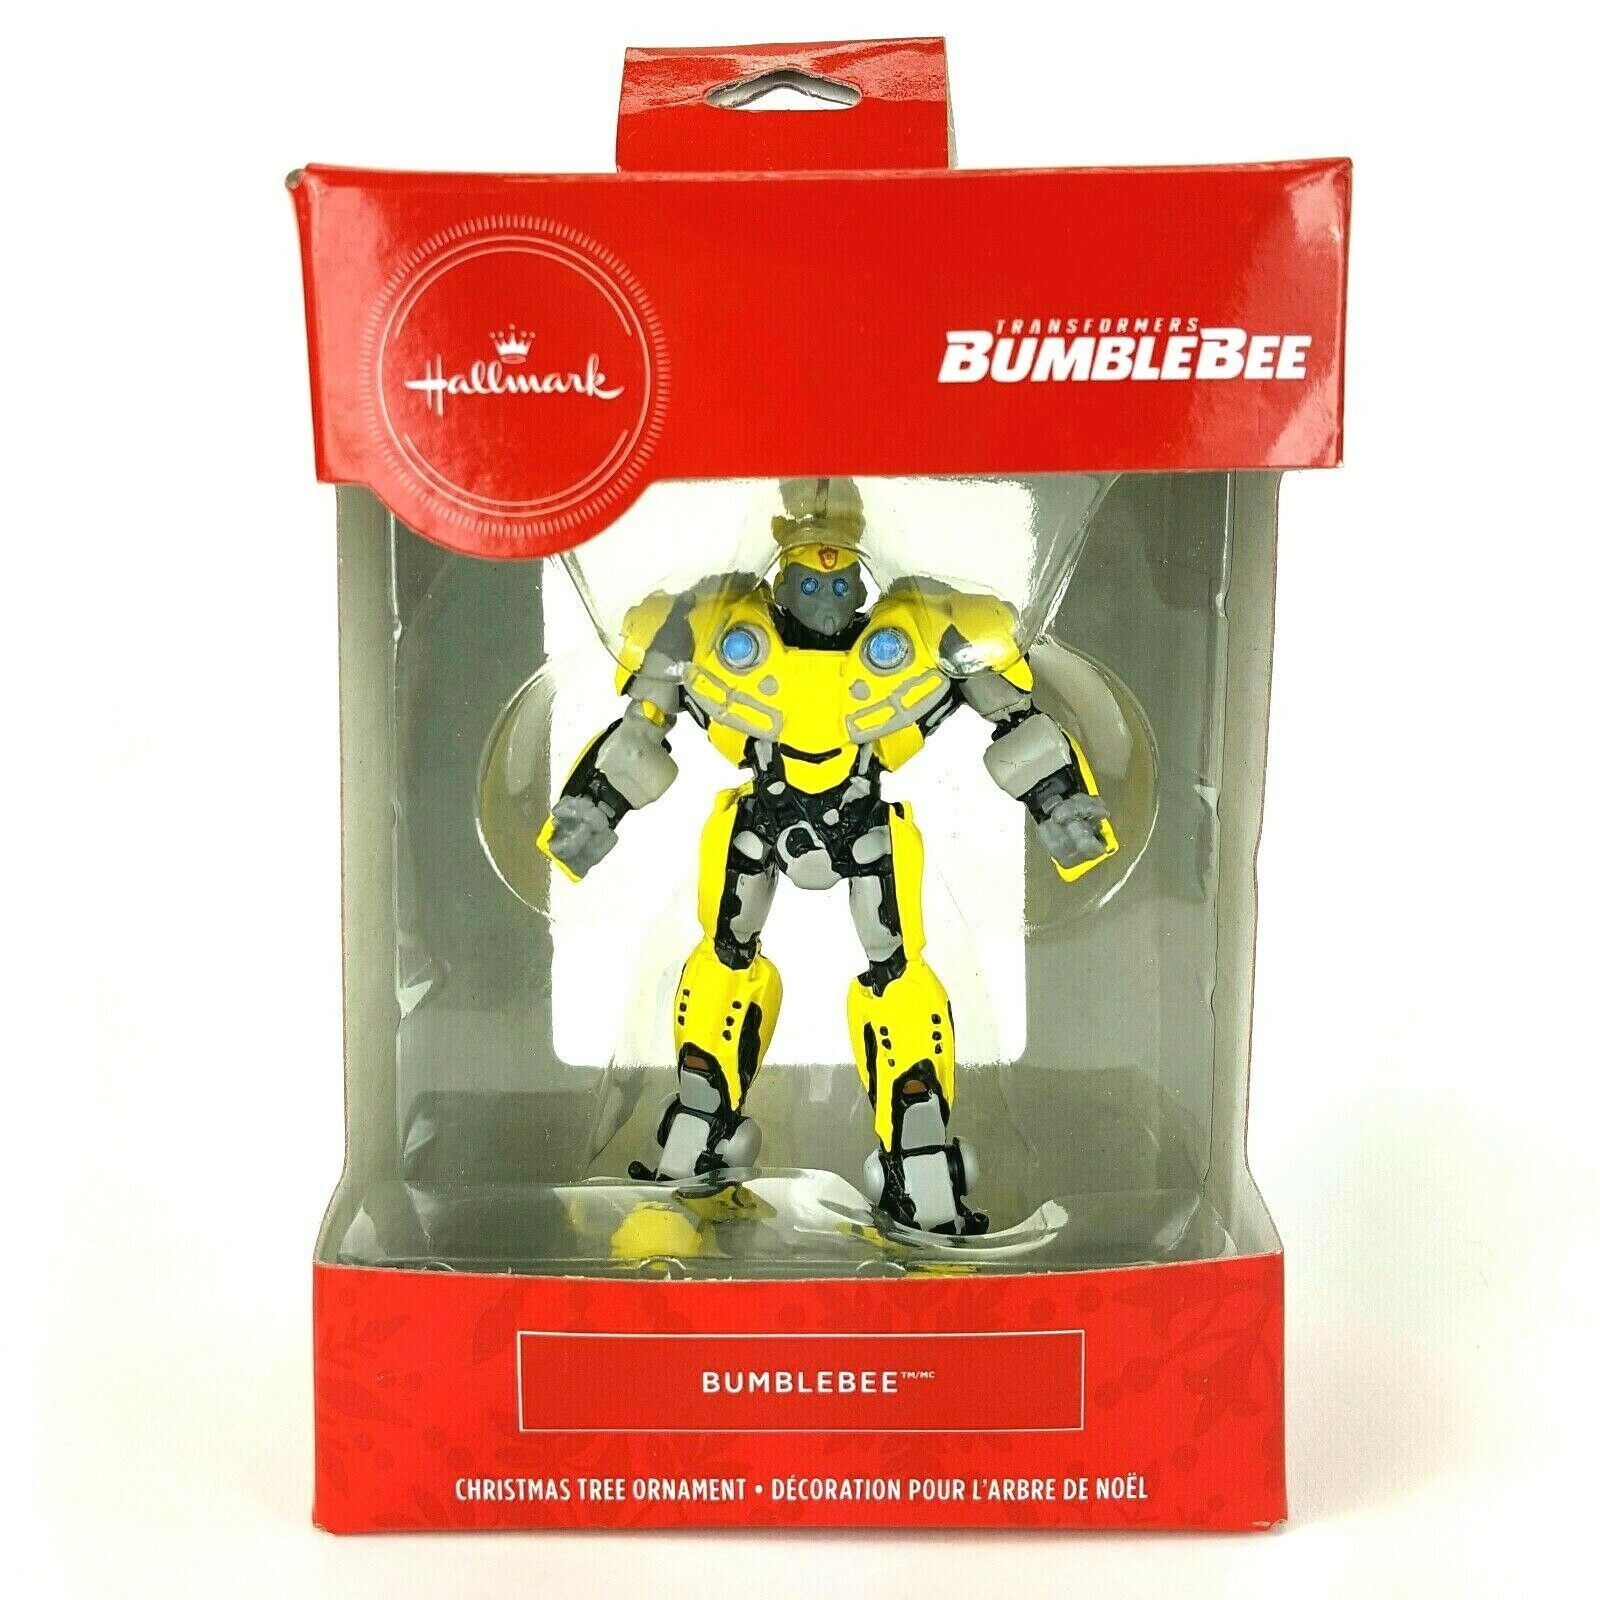 Primary image for 2019 Hallmark Red Box Transformers Bumblebee Christmas Tree Ornament  NEW